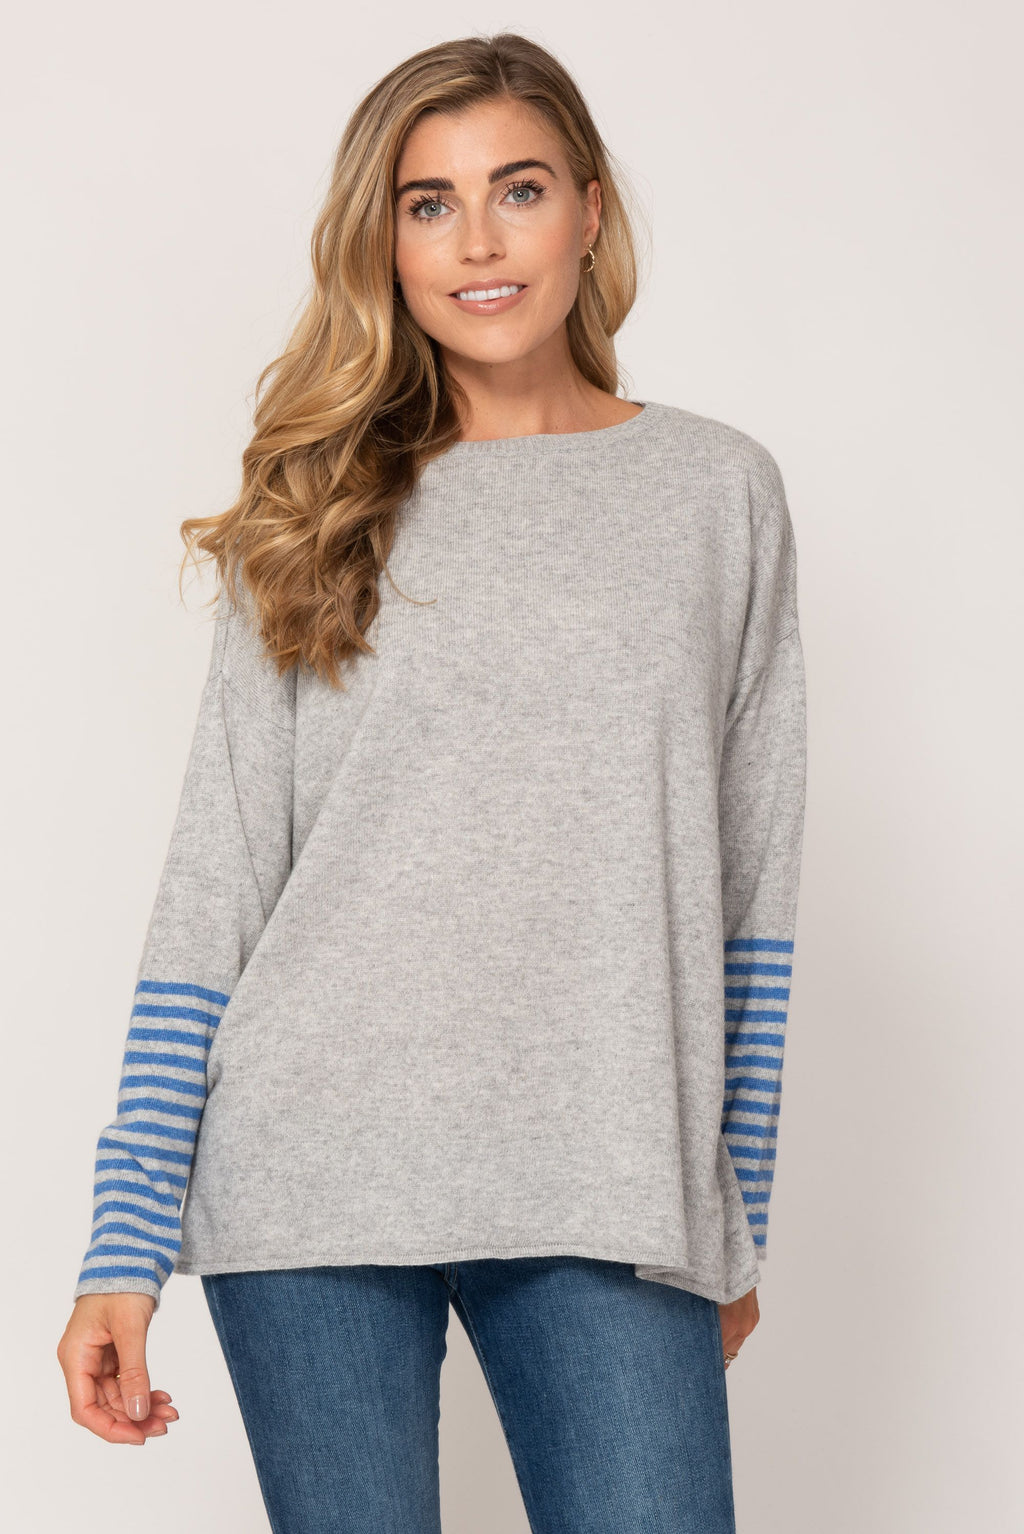 Cashmere Sweater- Blue and Grey Stripe